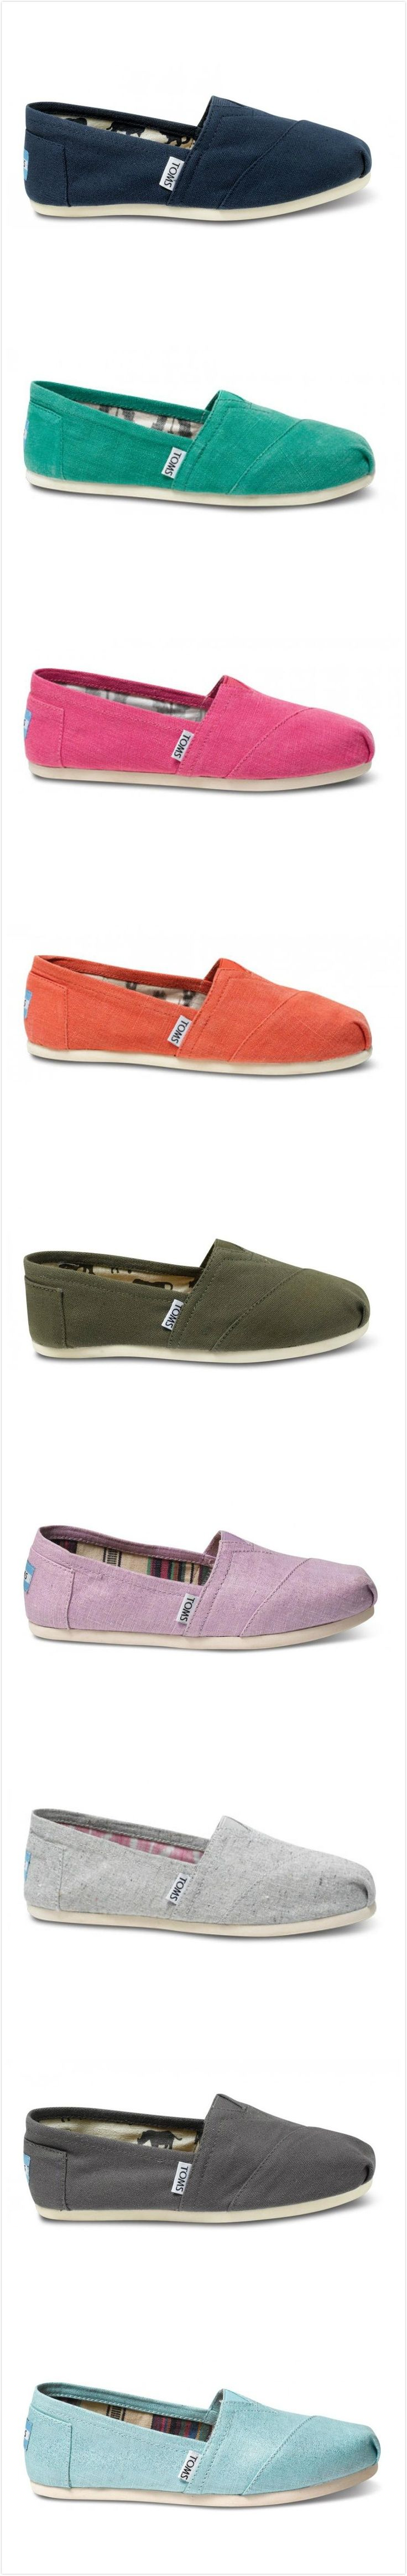 TOMS Shoes Outlet...$19.99! Same company, lots of sizes! Must remember this!